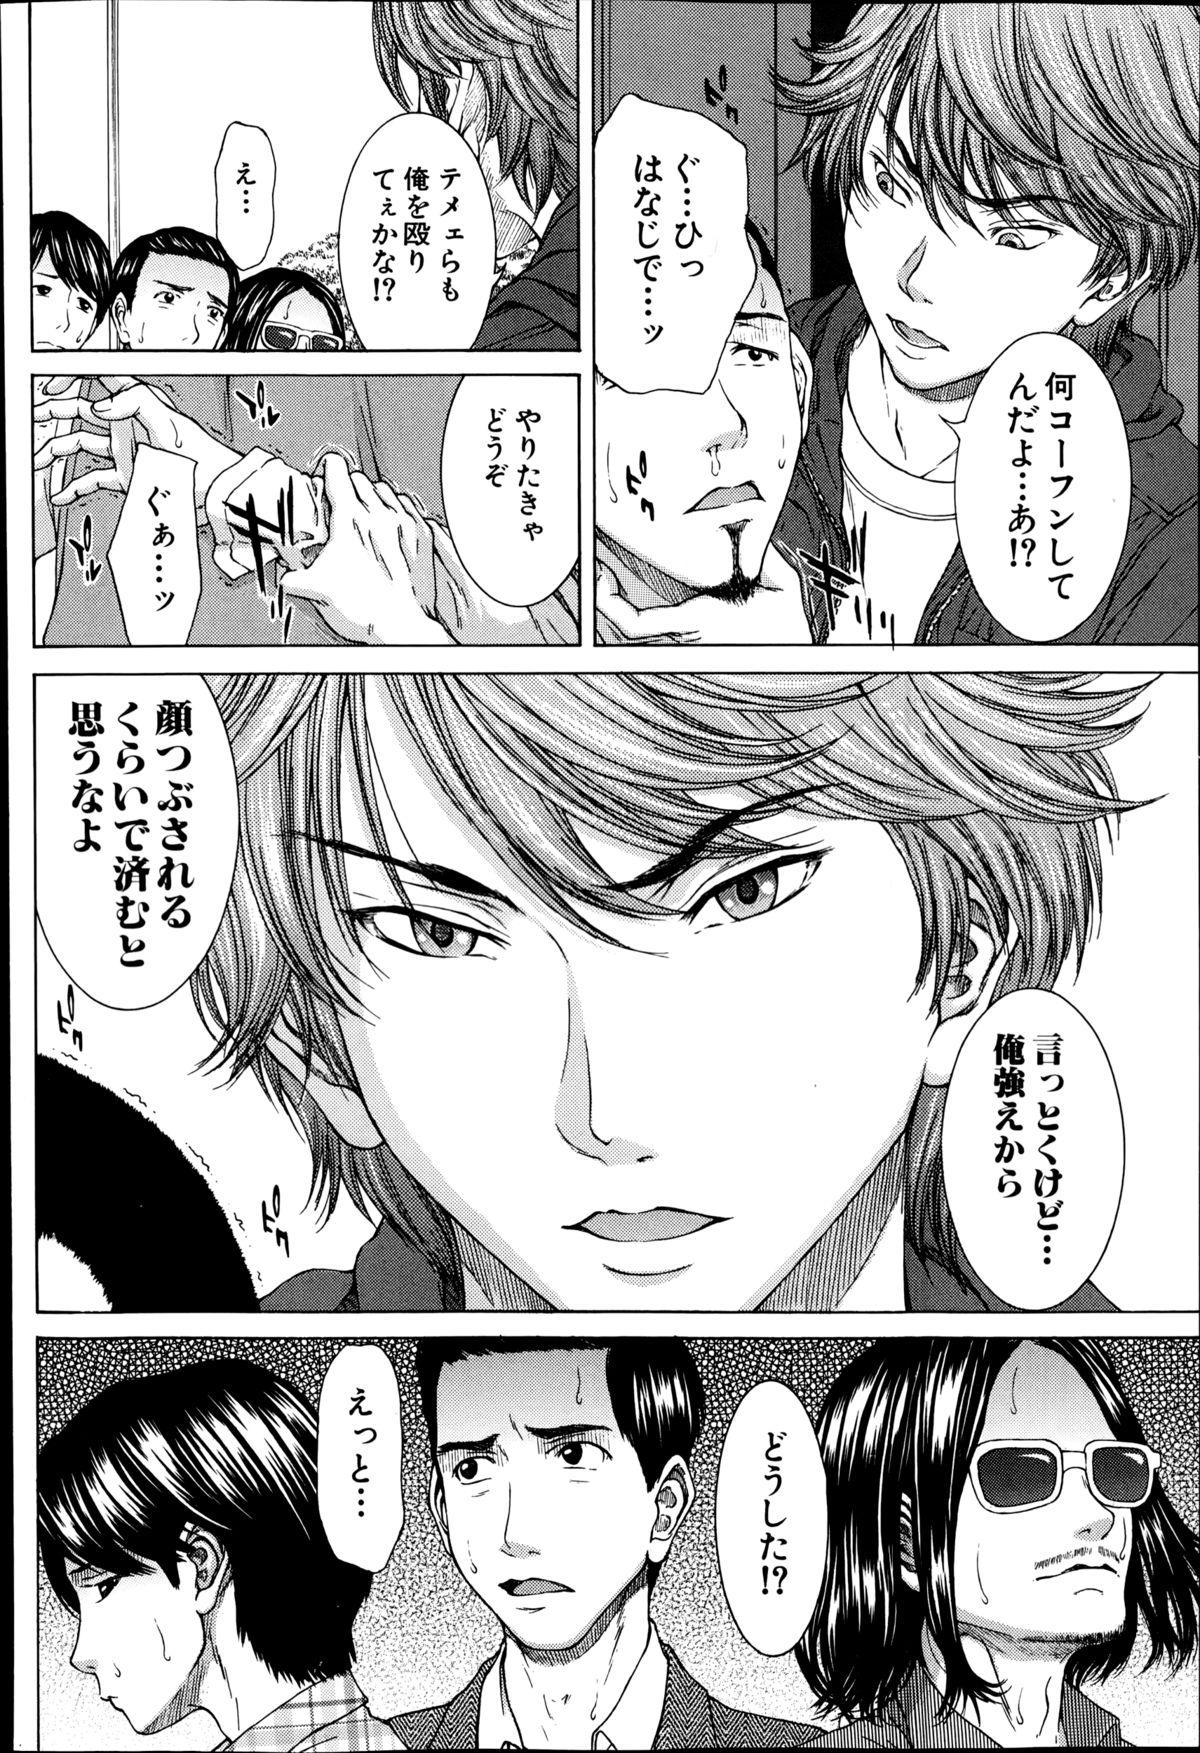 BUSTER COMIC 2014-09 261